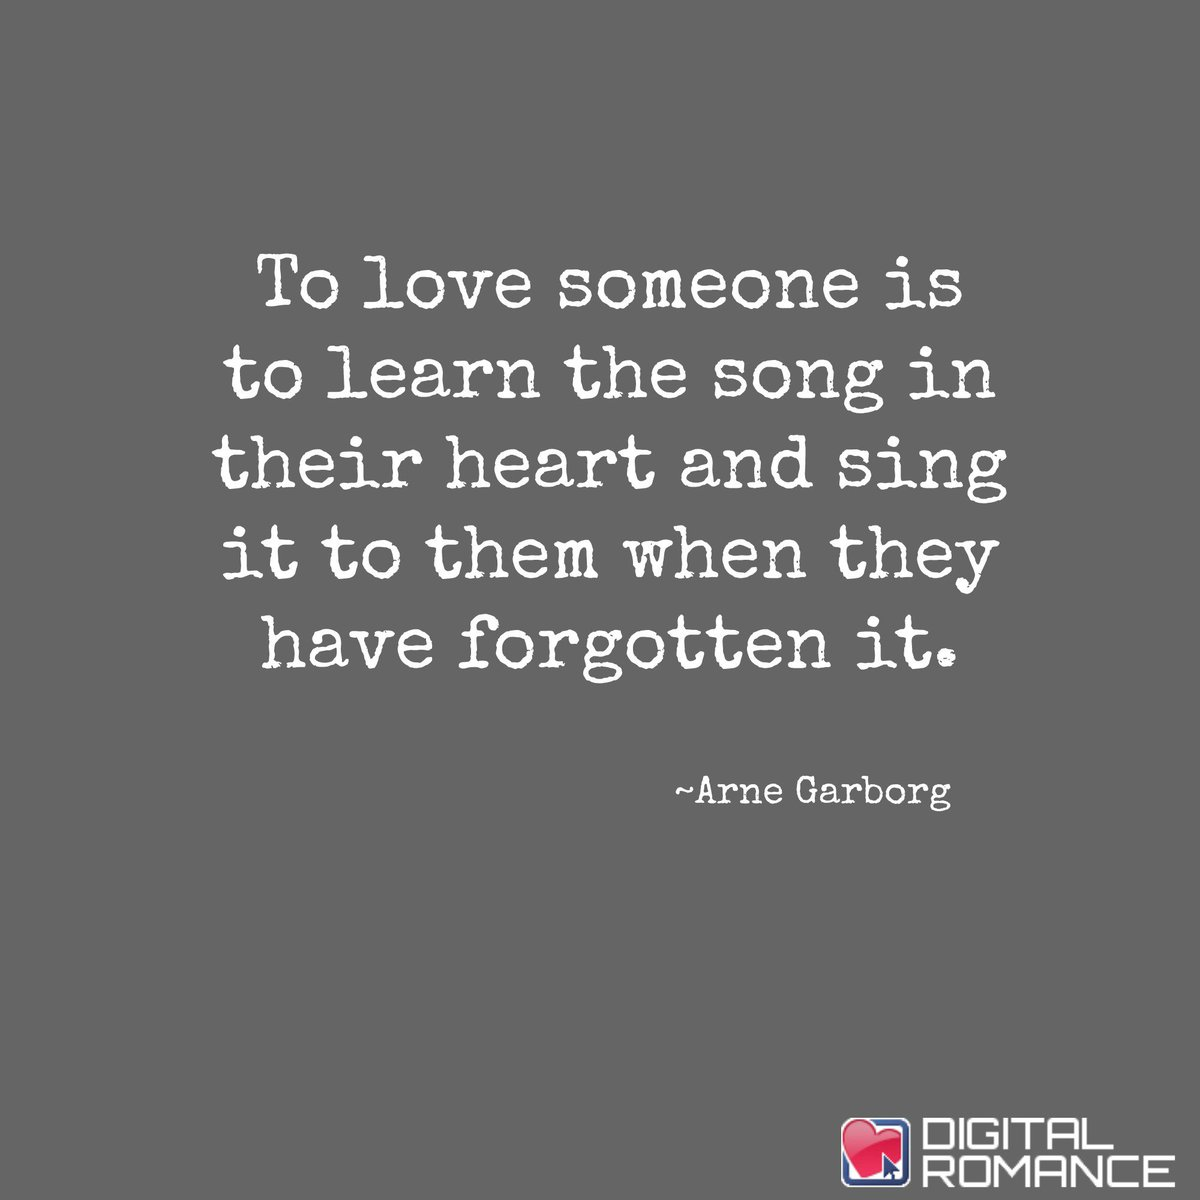 Digital Romance Inc On Twitter To Love Someone Is To Learn The